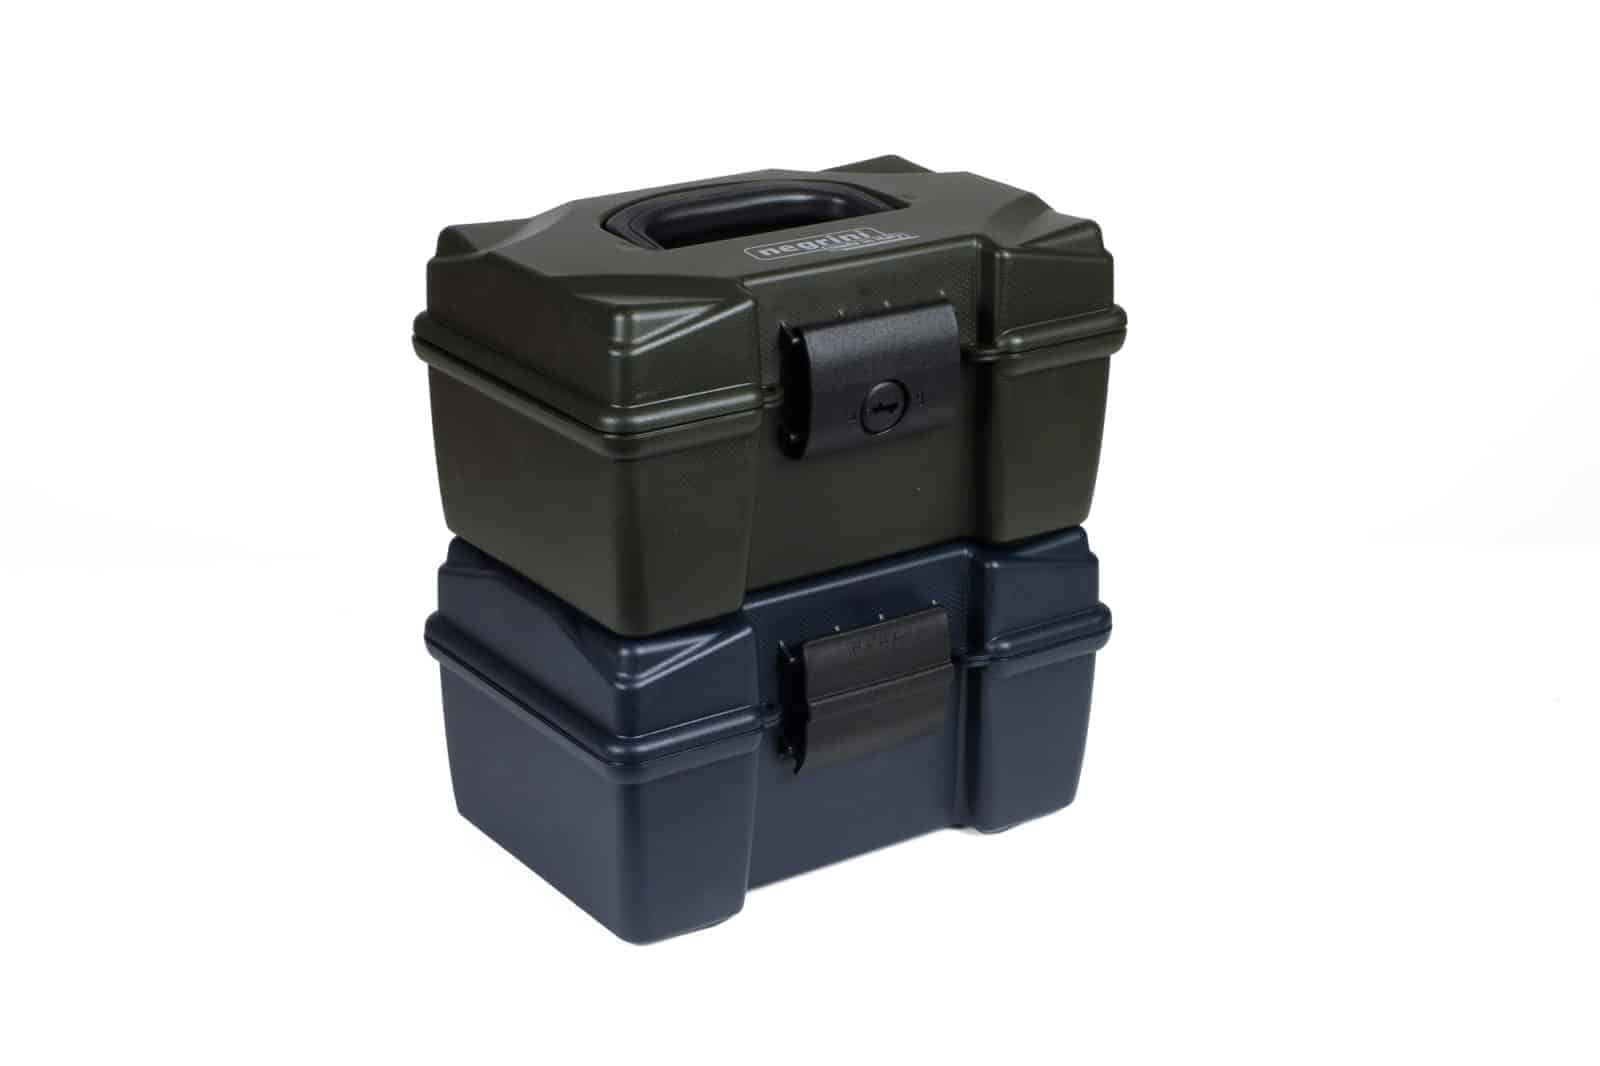 Negrini 21100ISY/WP ammo box stackable